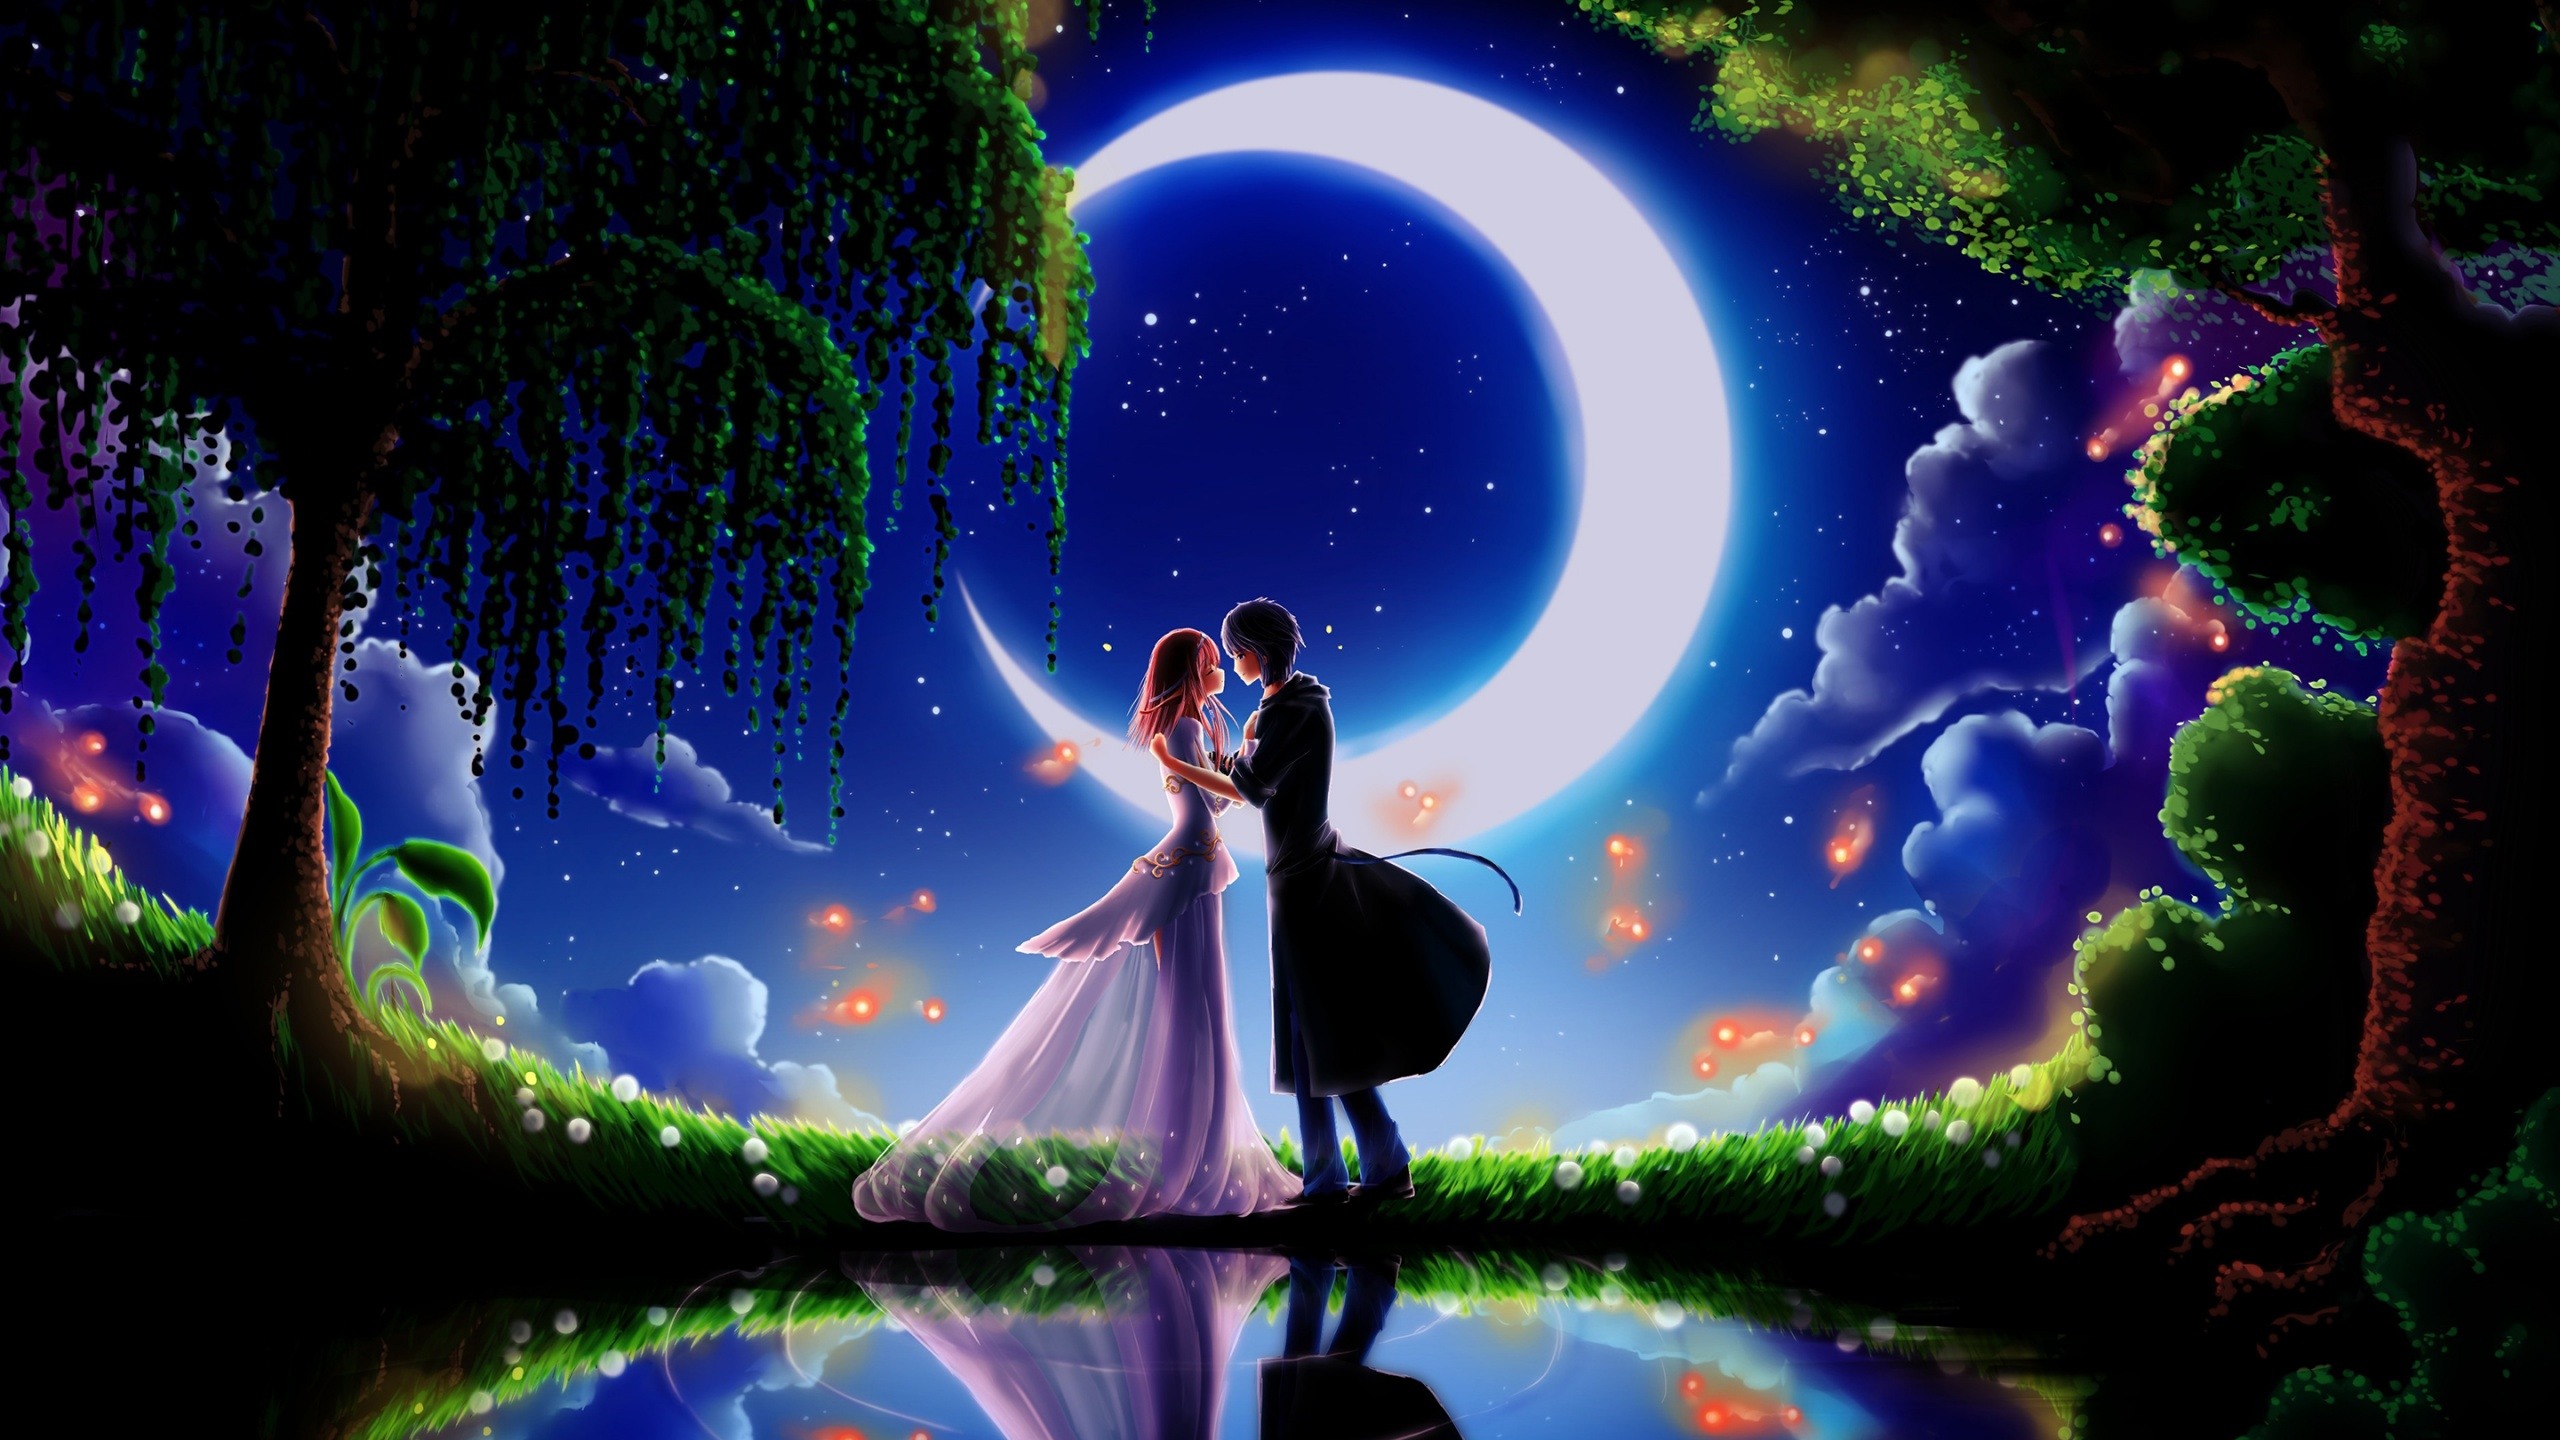 Romantic Love couple Kiss Wallpaper : Kiss Wallpapers Best Wallpapers